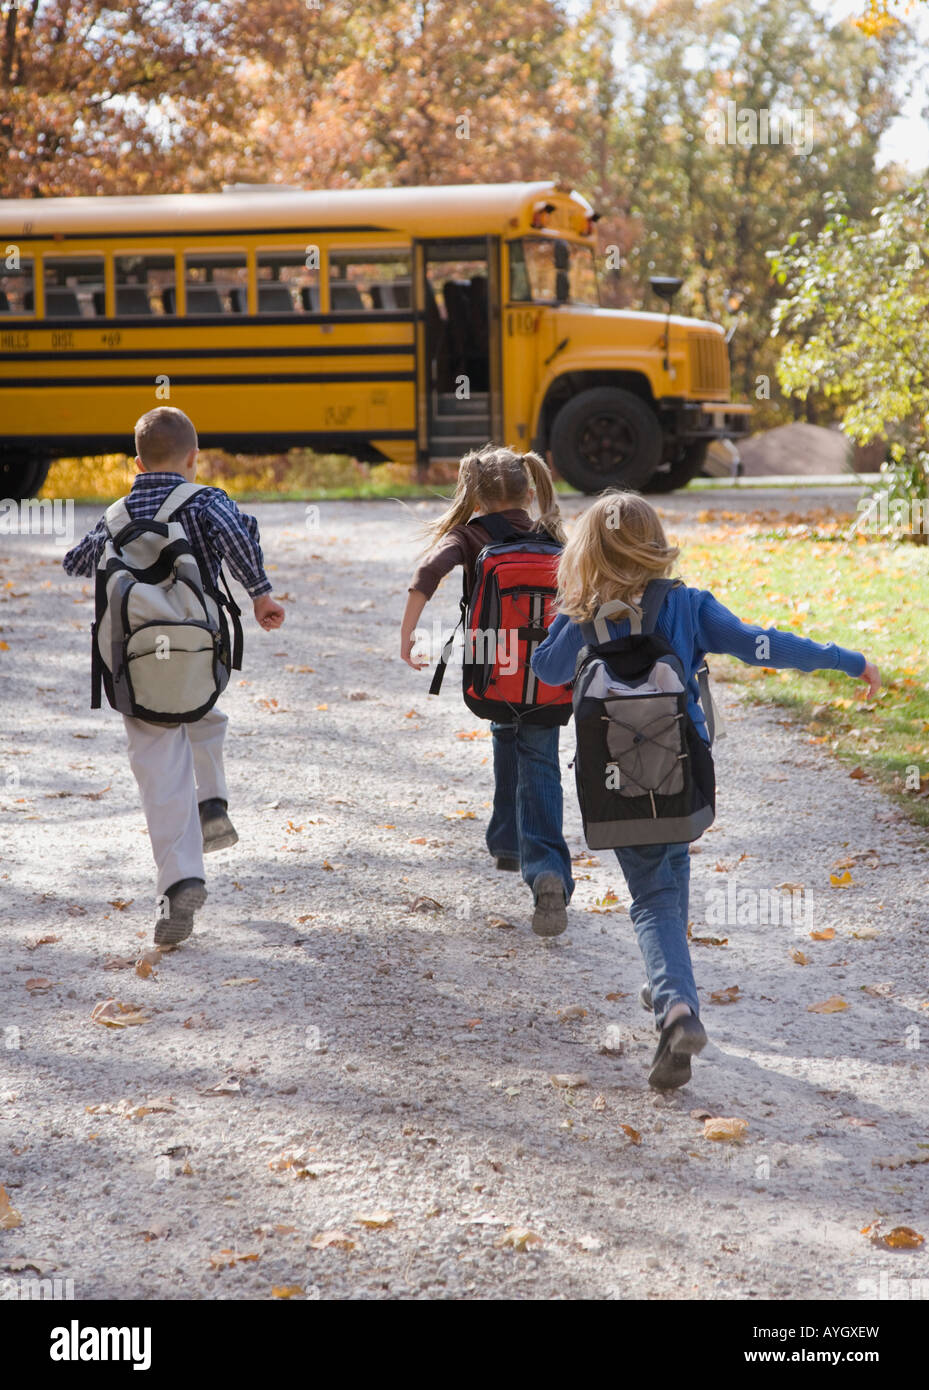 Children running towards school bus - Stock Image